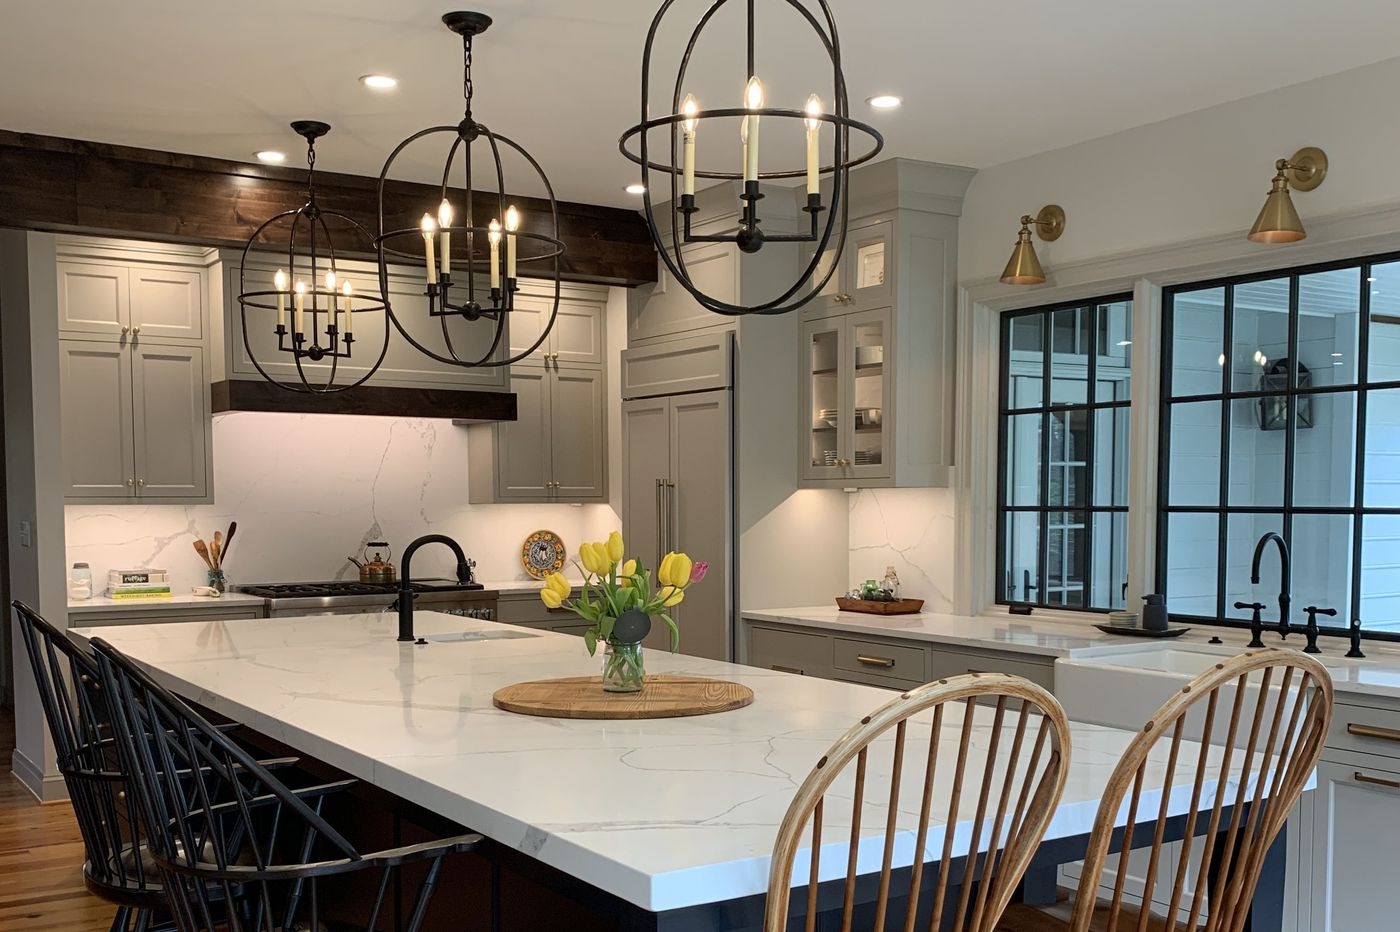 Kitchen islands create a hub for cooking, dining, entertaining and